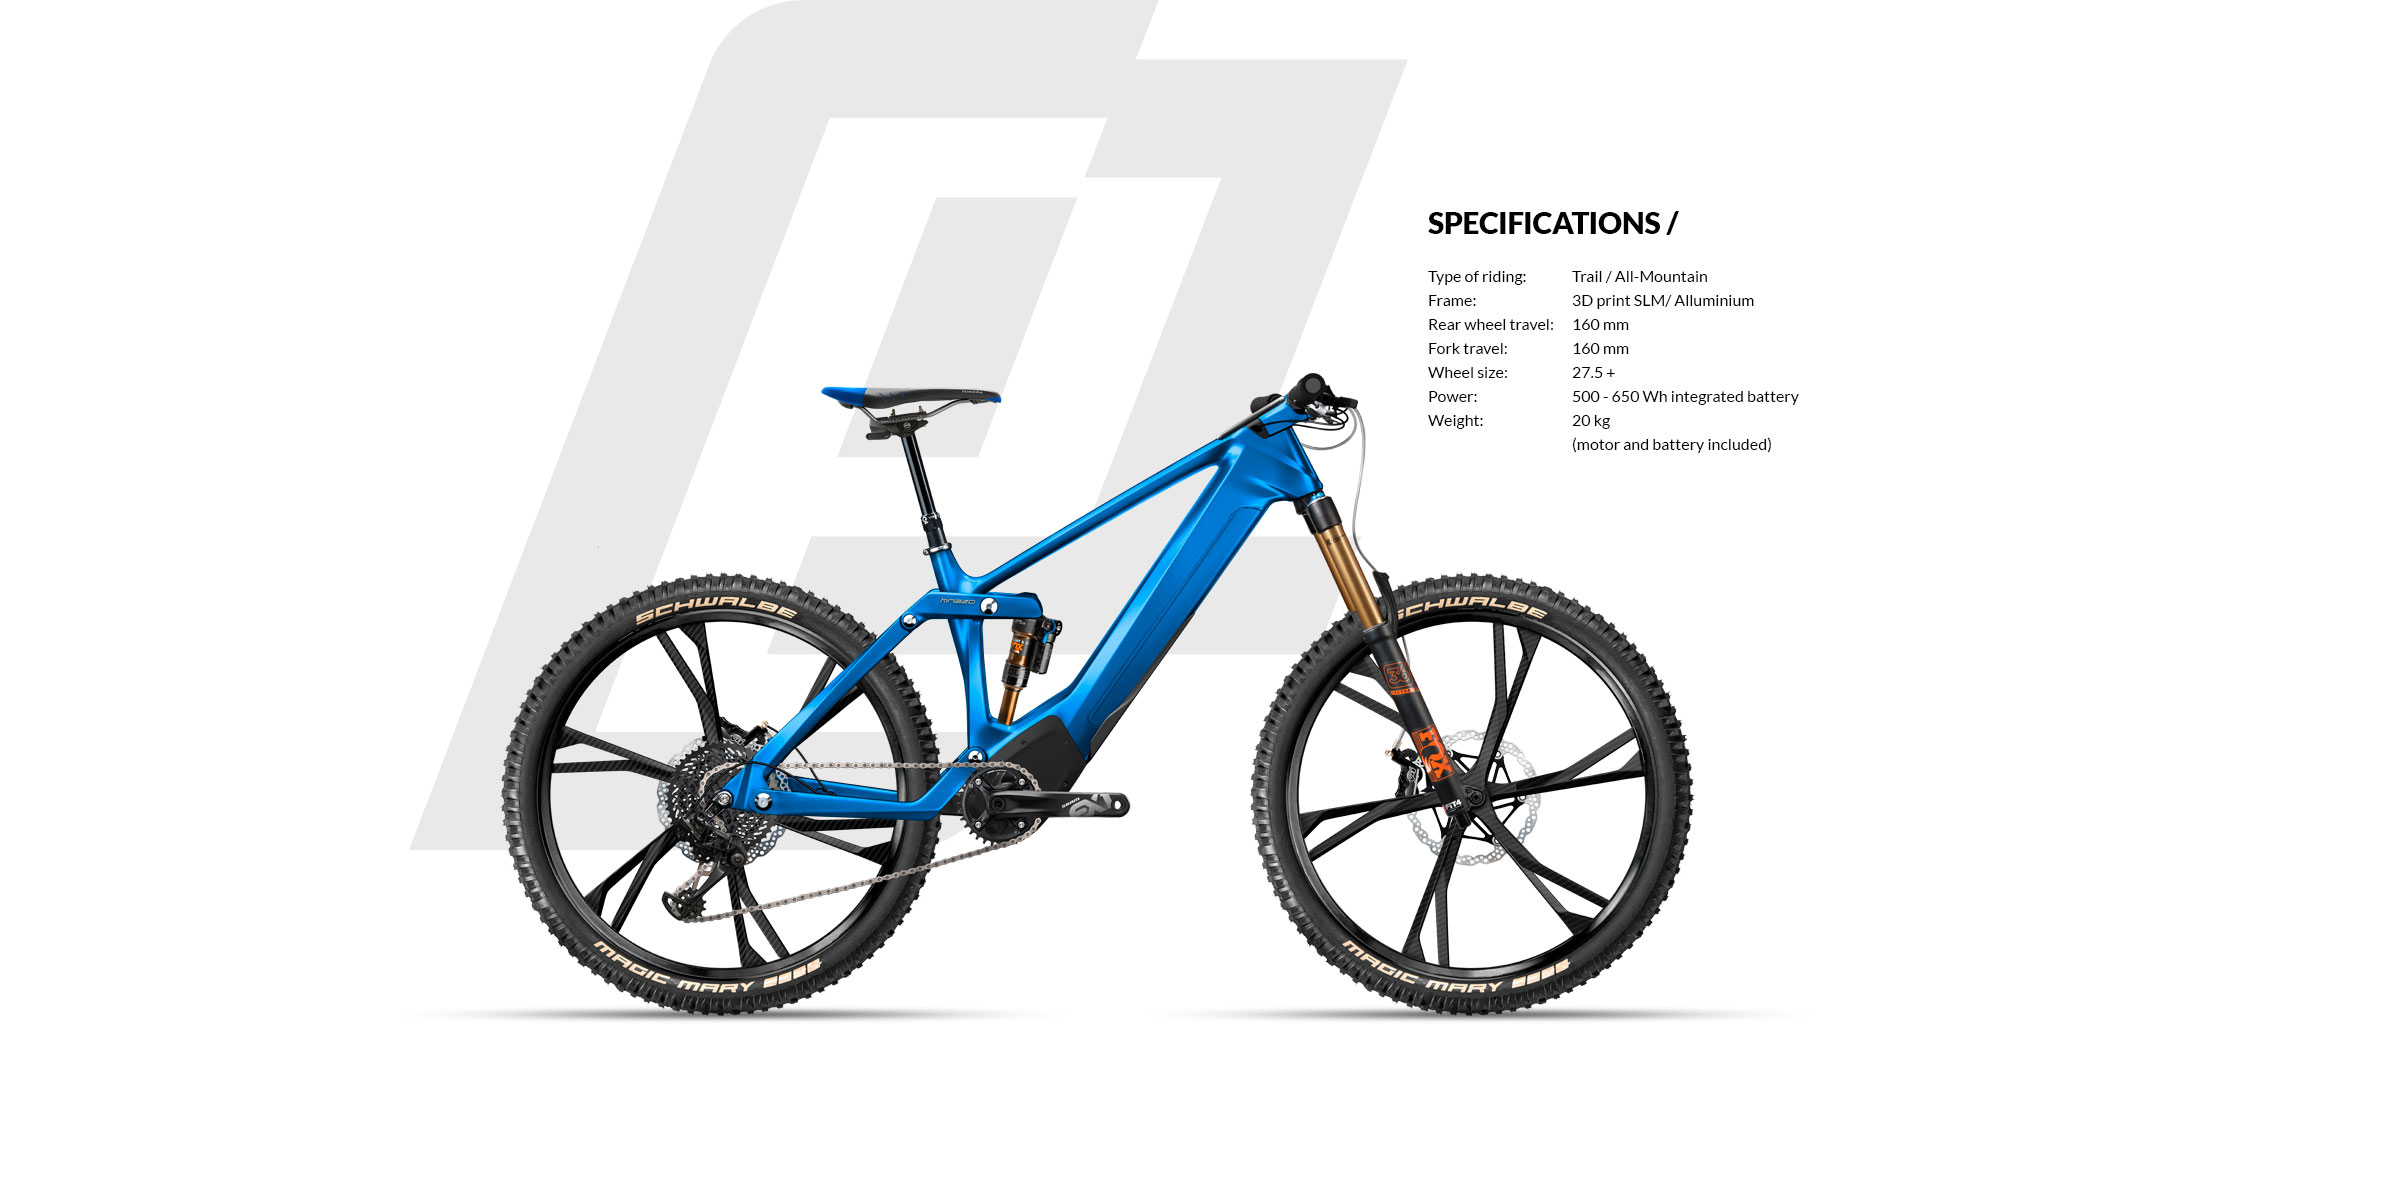 Kinazo ebike e1 - The first 3D printed enduro ebike  Turn